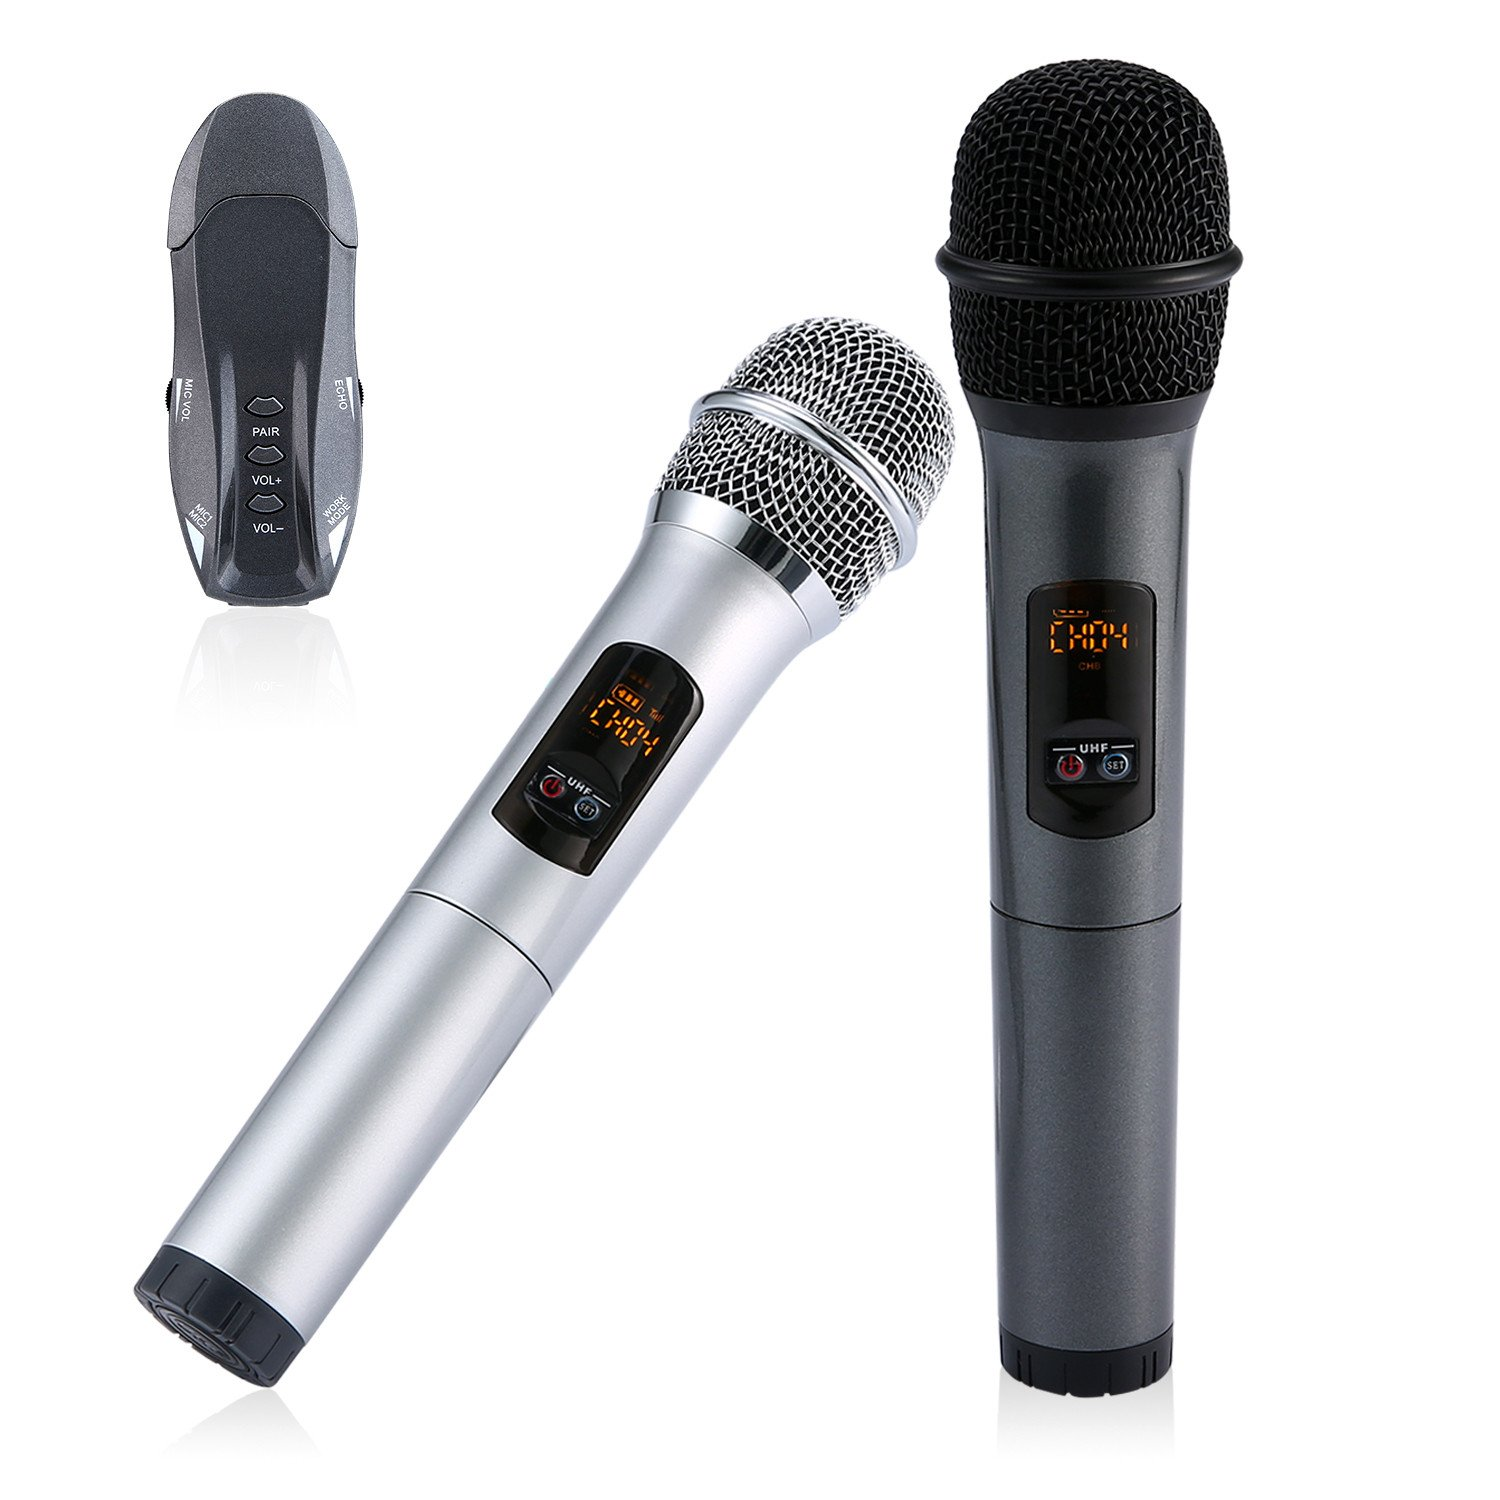 Wireless Karaoke Microphone, Umiwe Portable Handheld Bluetooth Mic Speaker Car Cordless Microphone for Conference Party Karaoke Outdoor Wedding with Receiving Box B071471V4N